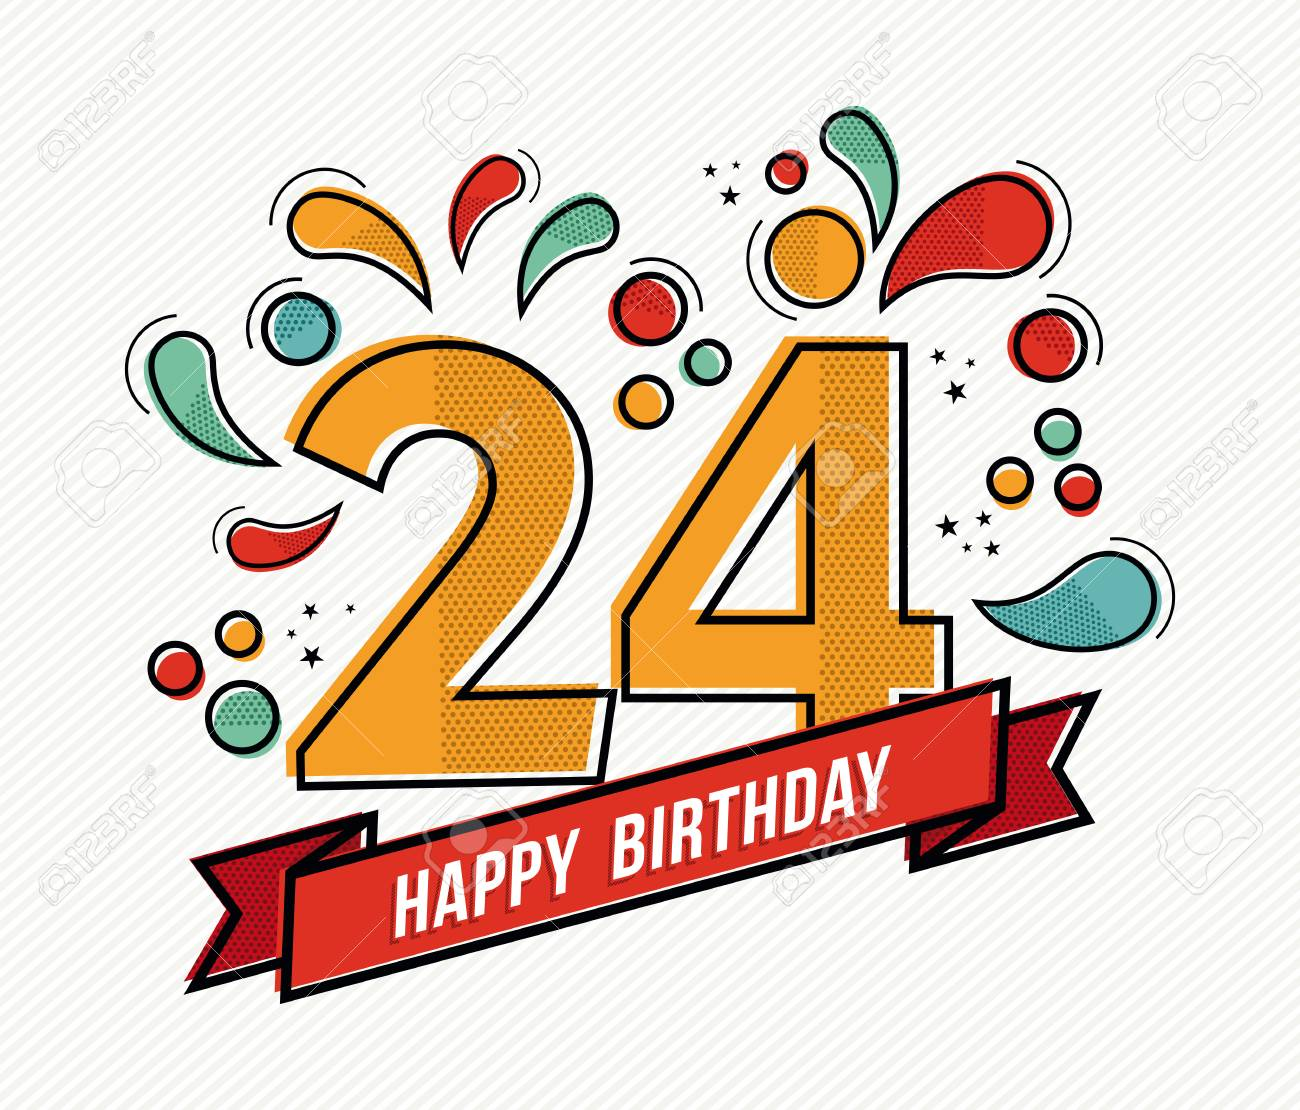 Happy Birthday Number 24 Greeting Card For Twenty Four Year Royalty Free Cliparts Vectors And Stock Illustration Image 56597660